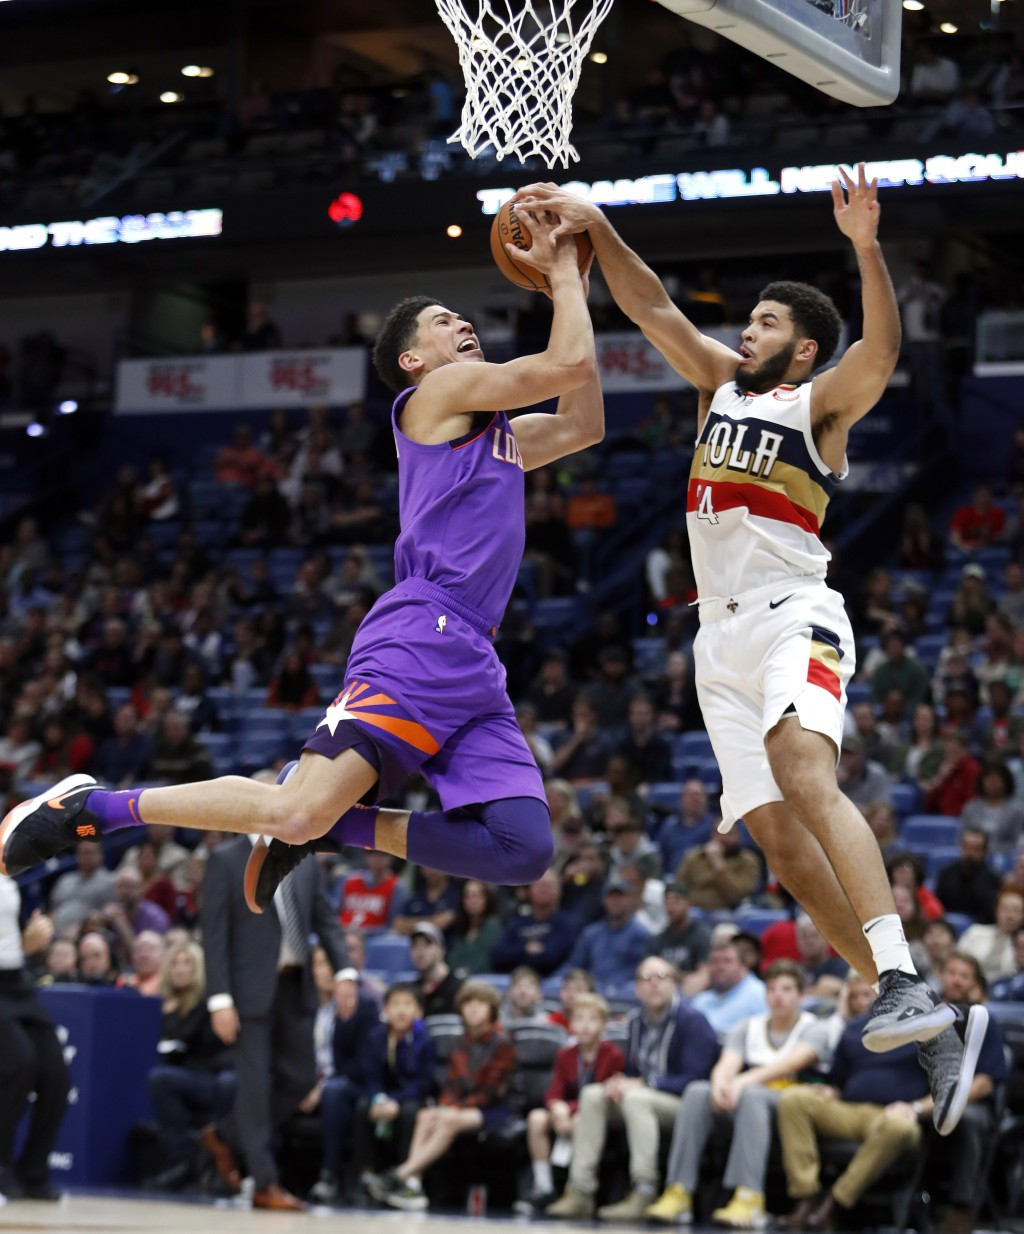 Phoenix Suns guard Devin Booker (1) is blocked by New Orleans Pelicans guard Kenrich Williams (34) during the first half of an NBA basketball game in